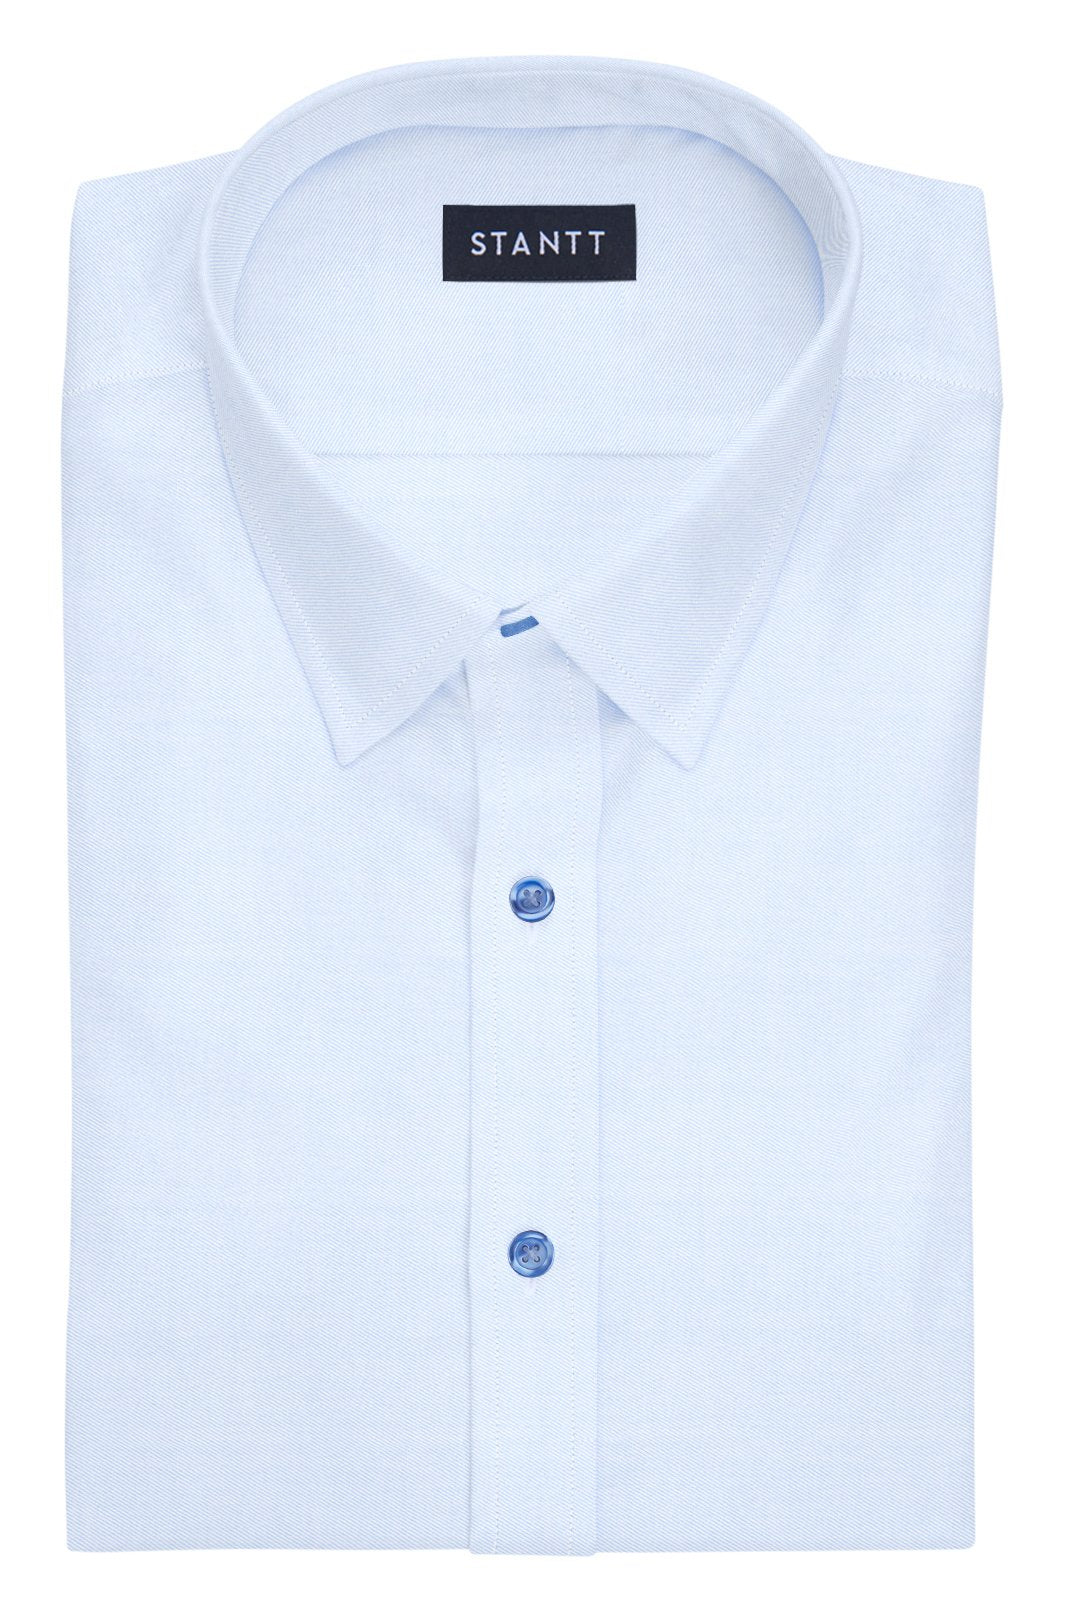 Navy Button on Wrinkle-Resistant Light Blue Twill: Semi-Spread Collar, French Cuff